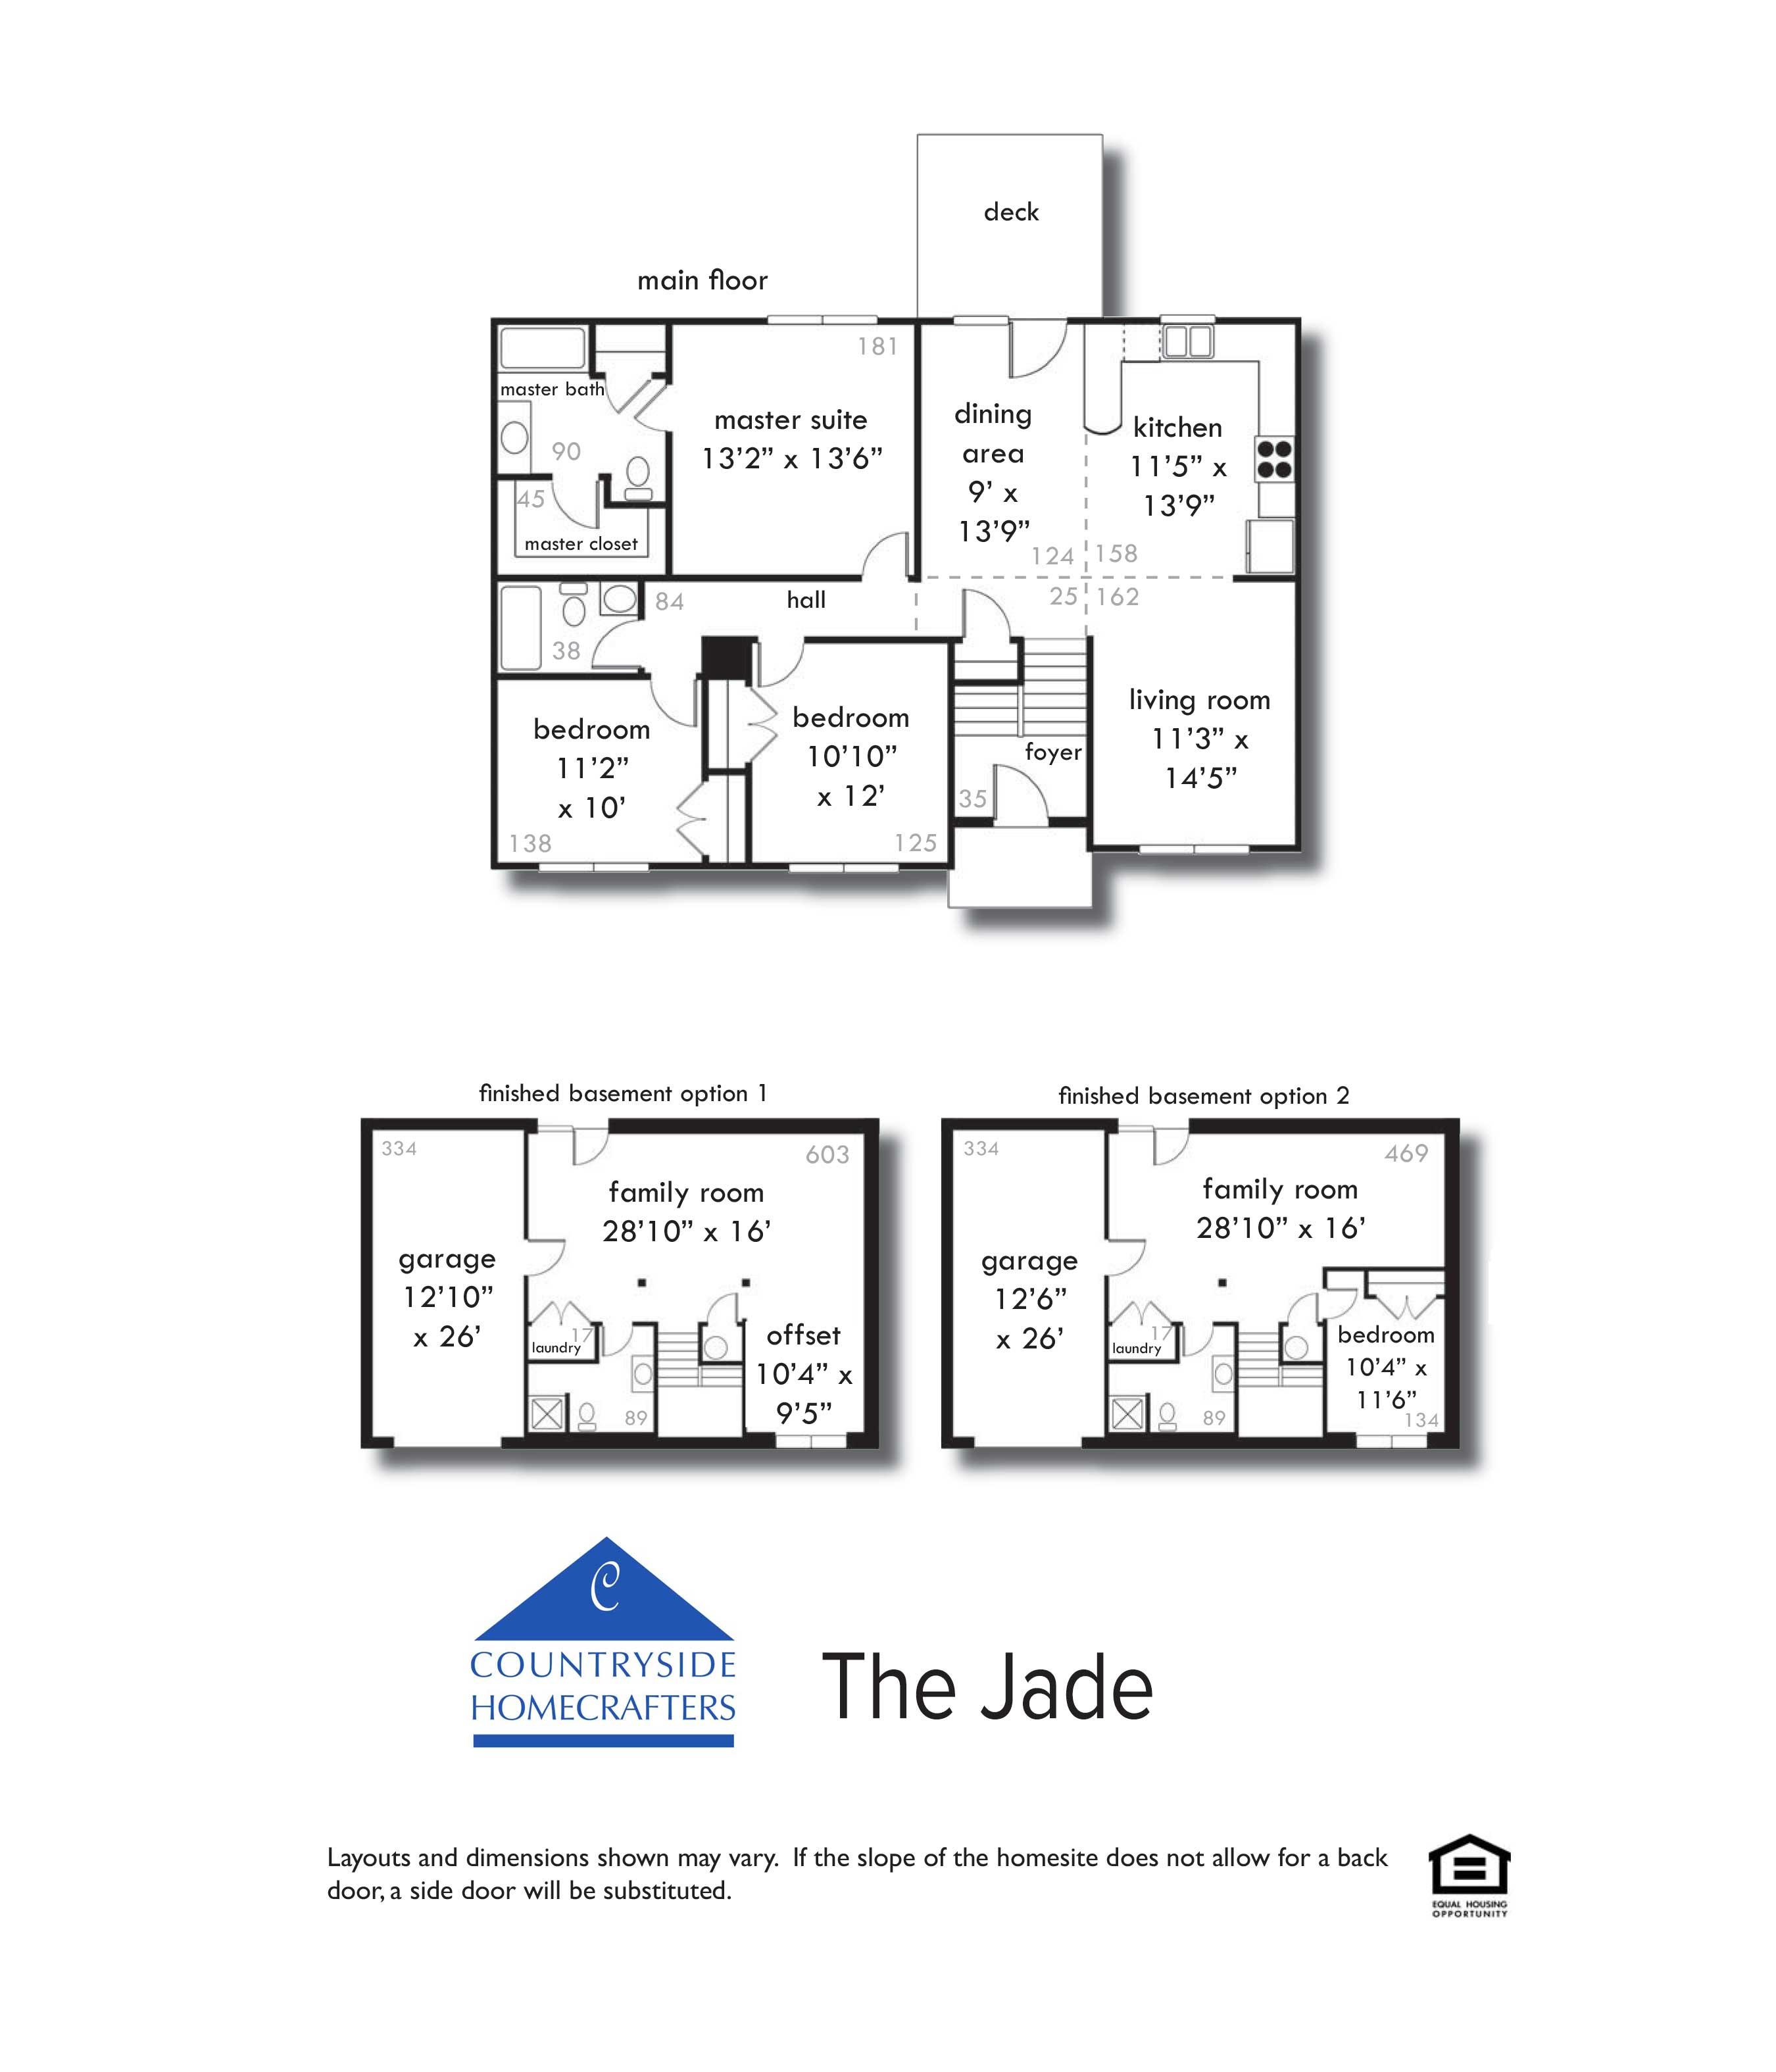 Floor Plans For 2500 Square Feet in addition 3 Bedroom Apartments For Rent In Chicago also Houseplan080D 0001 also Nsy Portsmouth Kittery Me further Kayak Deck. on sheridan house plans